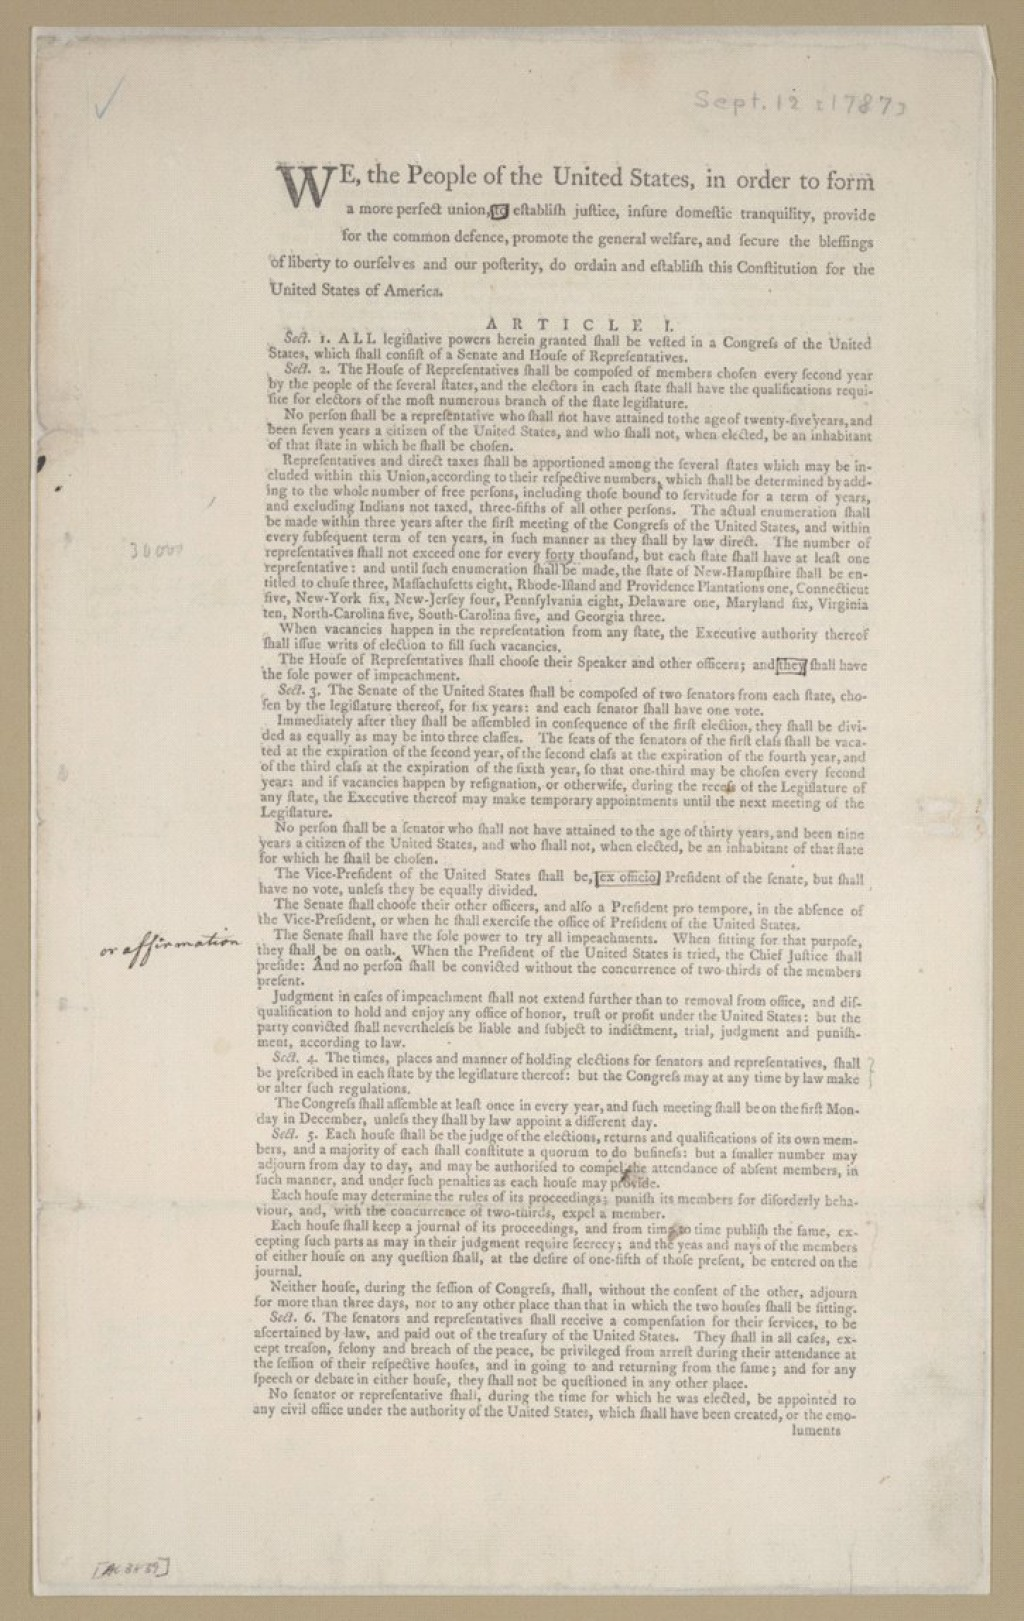 017 Essay Example Alexander Hamilton Essays Us0062 01p1 Enlarge 725 Frightening 51 Federalist Papers 78 Did Wrote Large